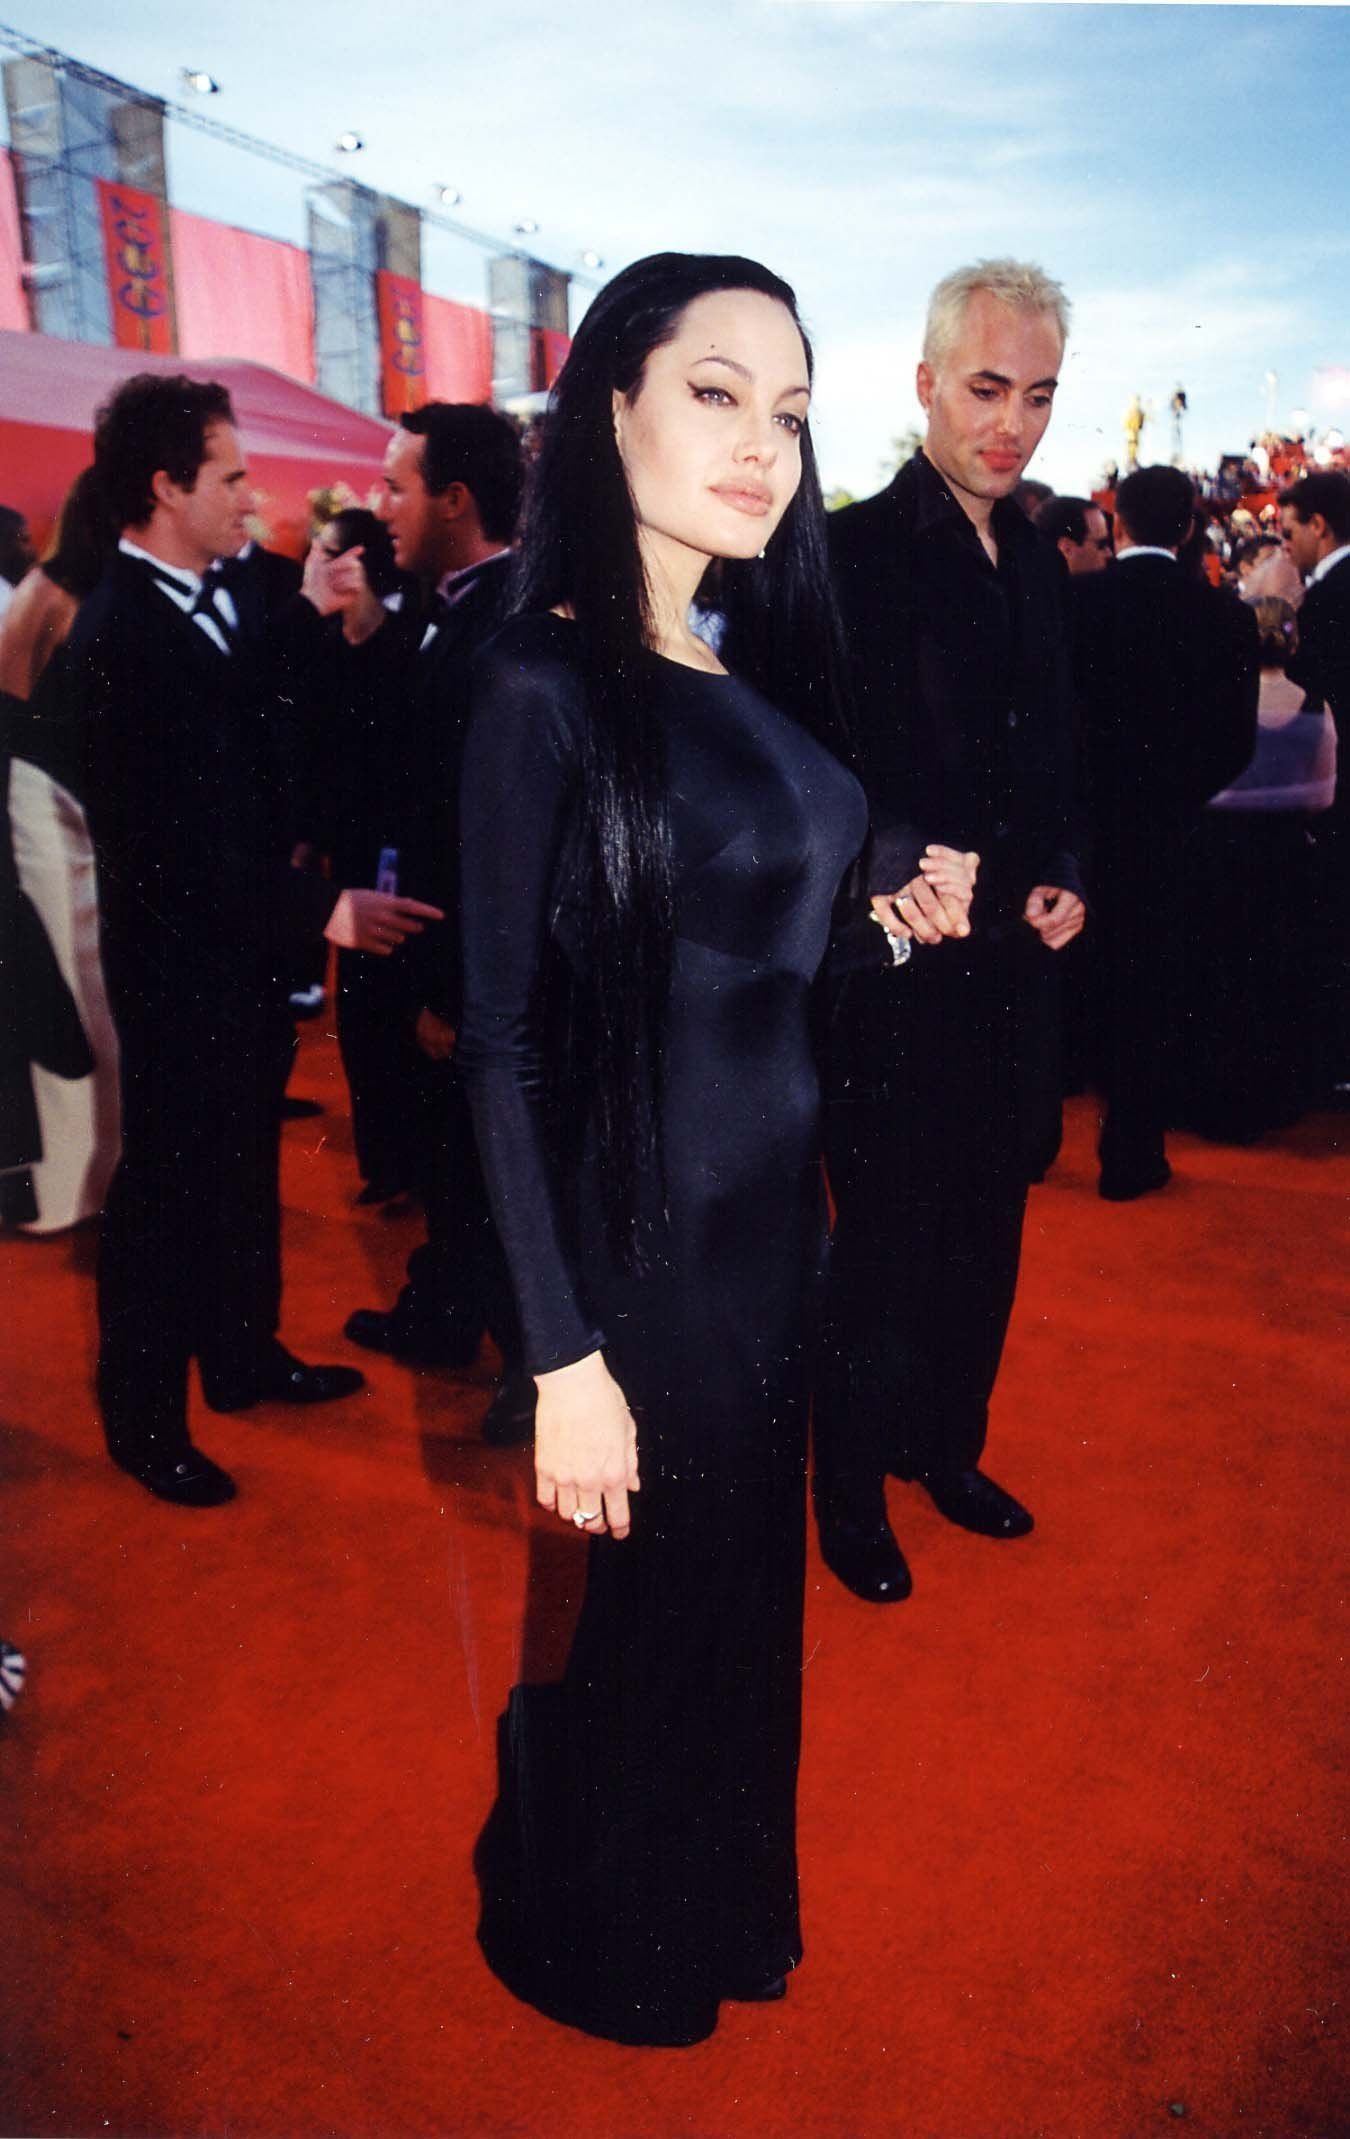 72nd Academy Awards - March 26th 2000 - 041 - Angelina Jolie Fan Photo Gallery | Angelina Jolie Fansite Gallery